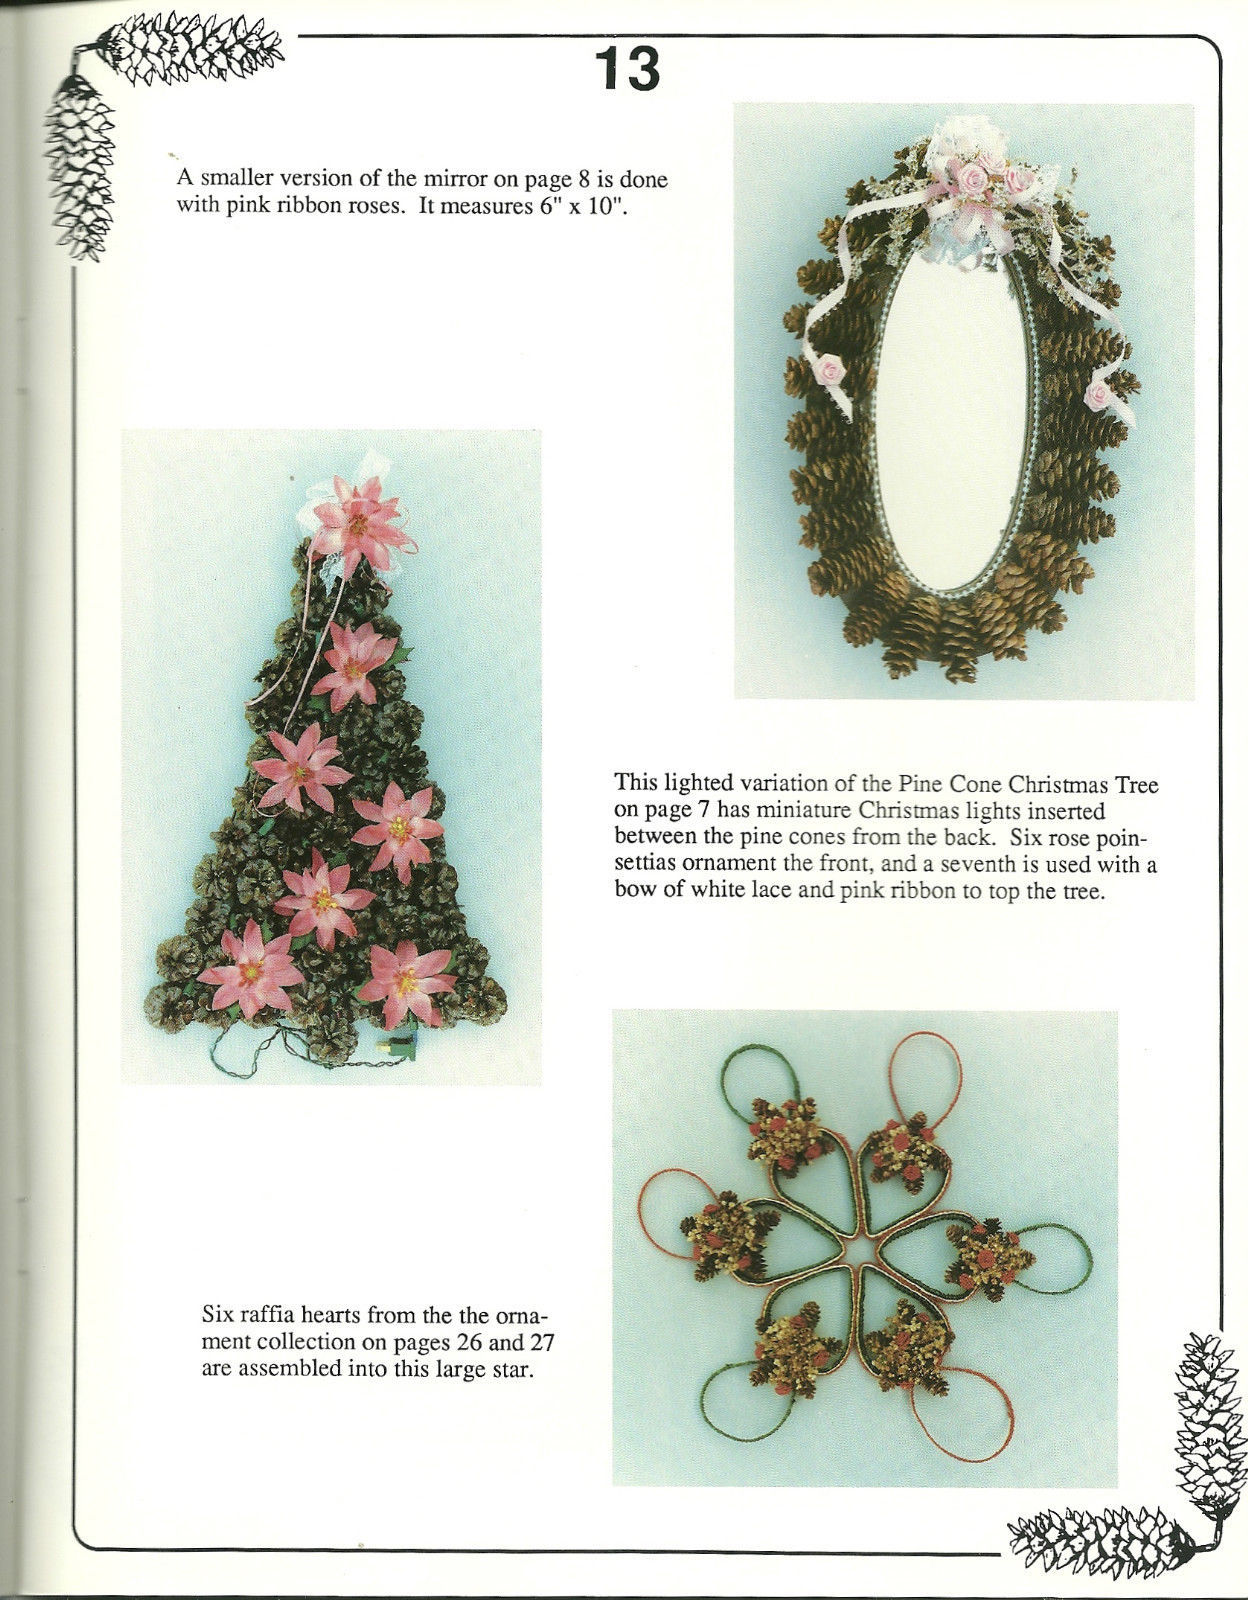 Primarily Pine Cones Hot Off The Press Craft Book No 145 Kaye Cheney